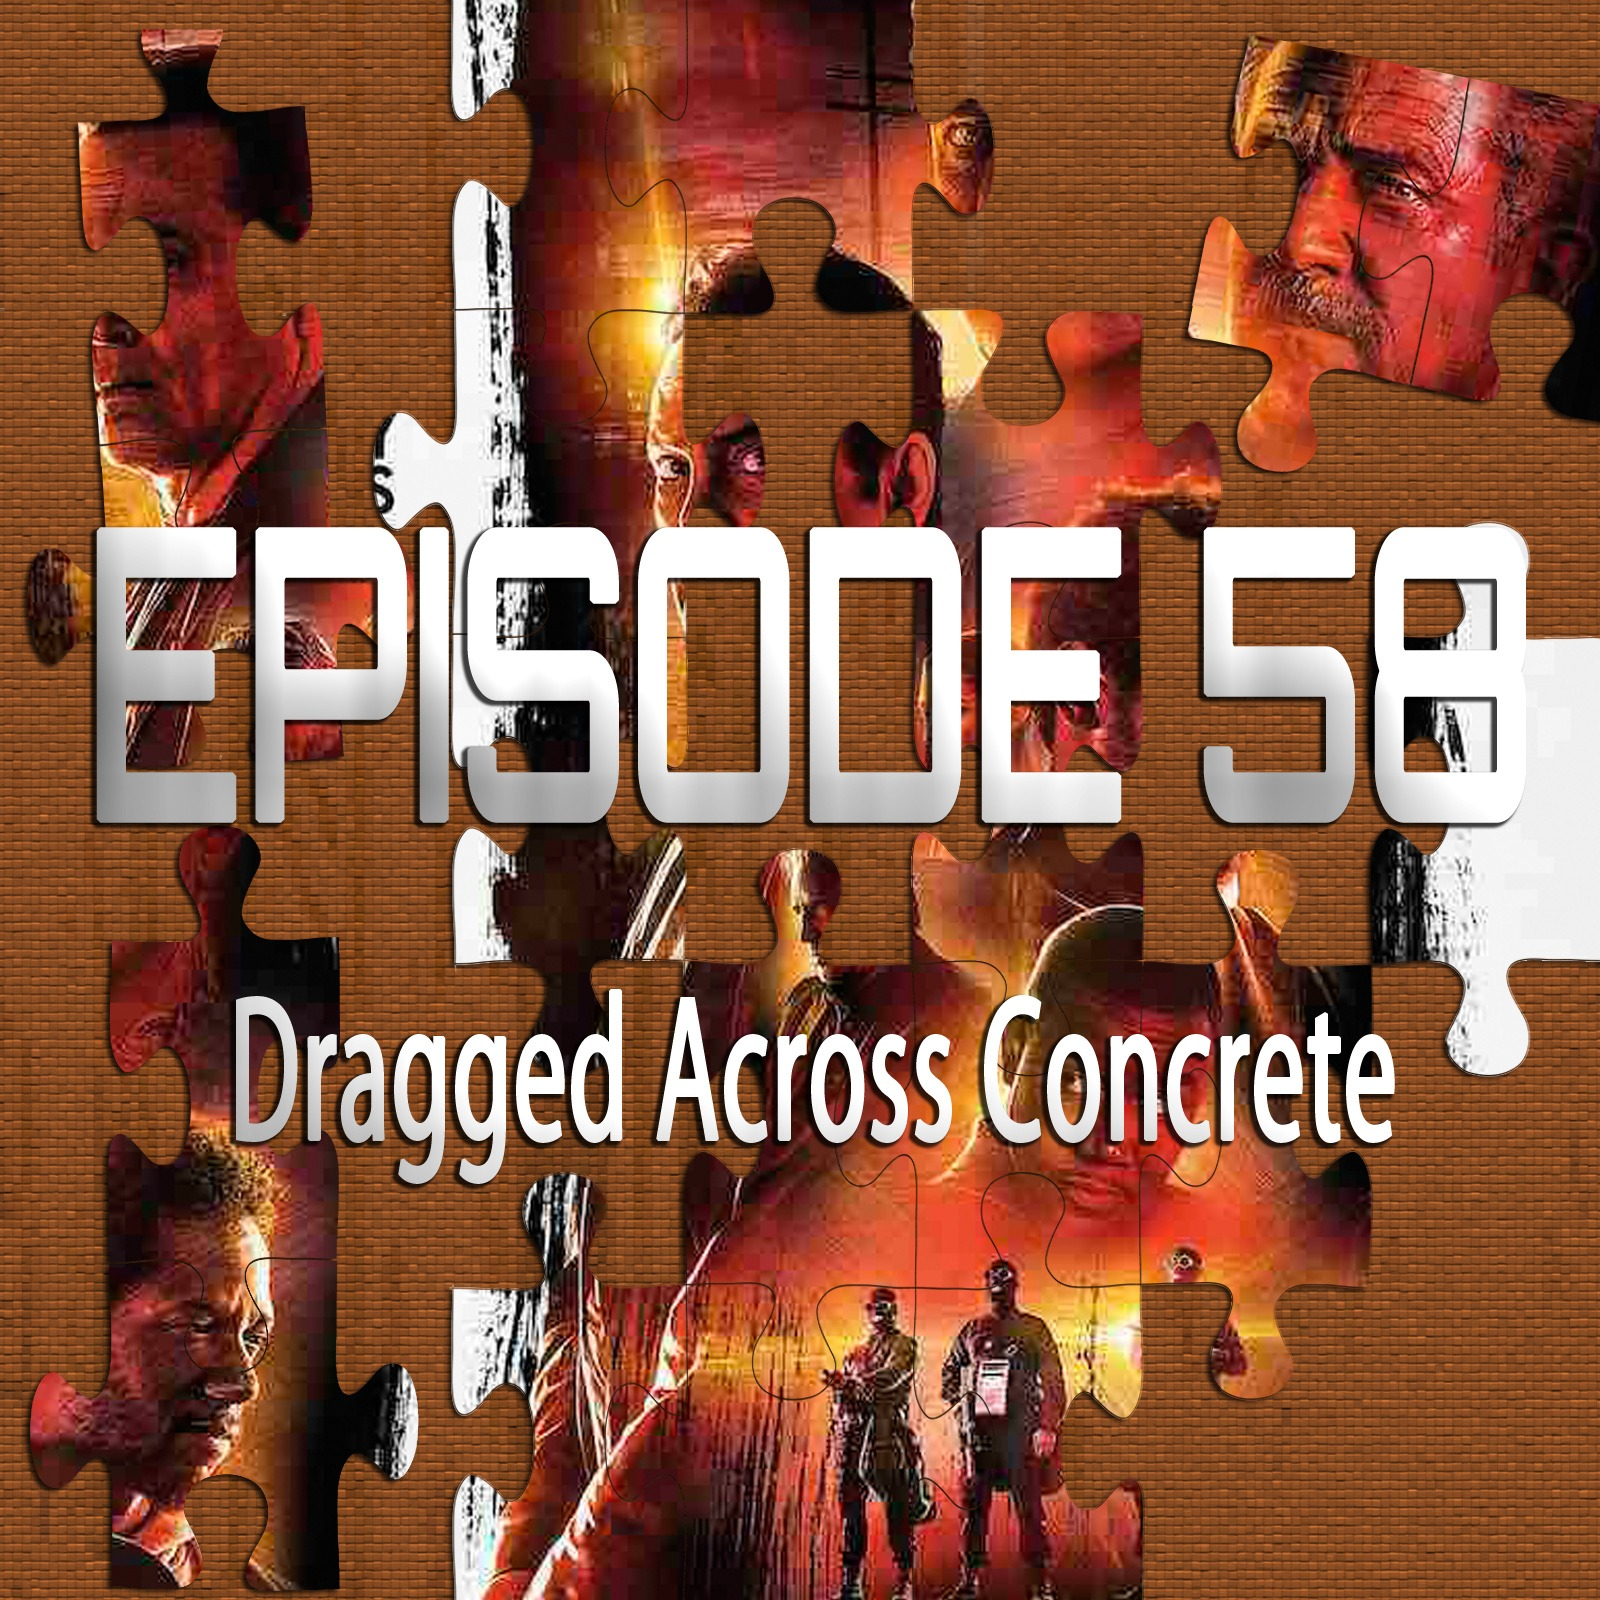 Dragged Across Concrete (Featuring Chad Clinton Freeman)